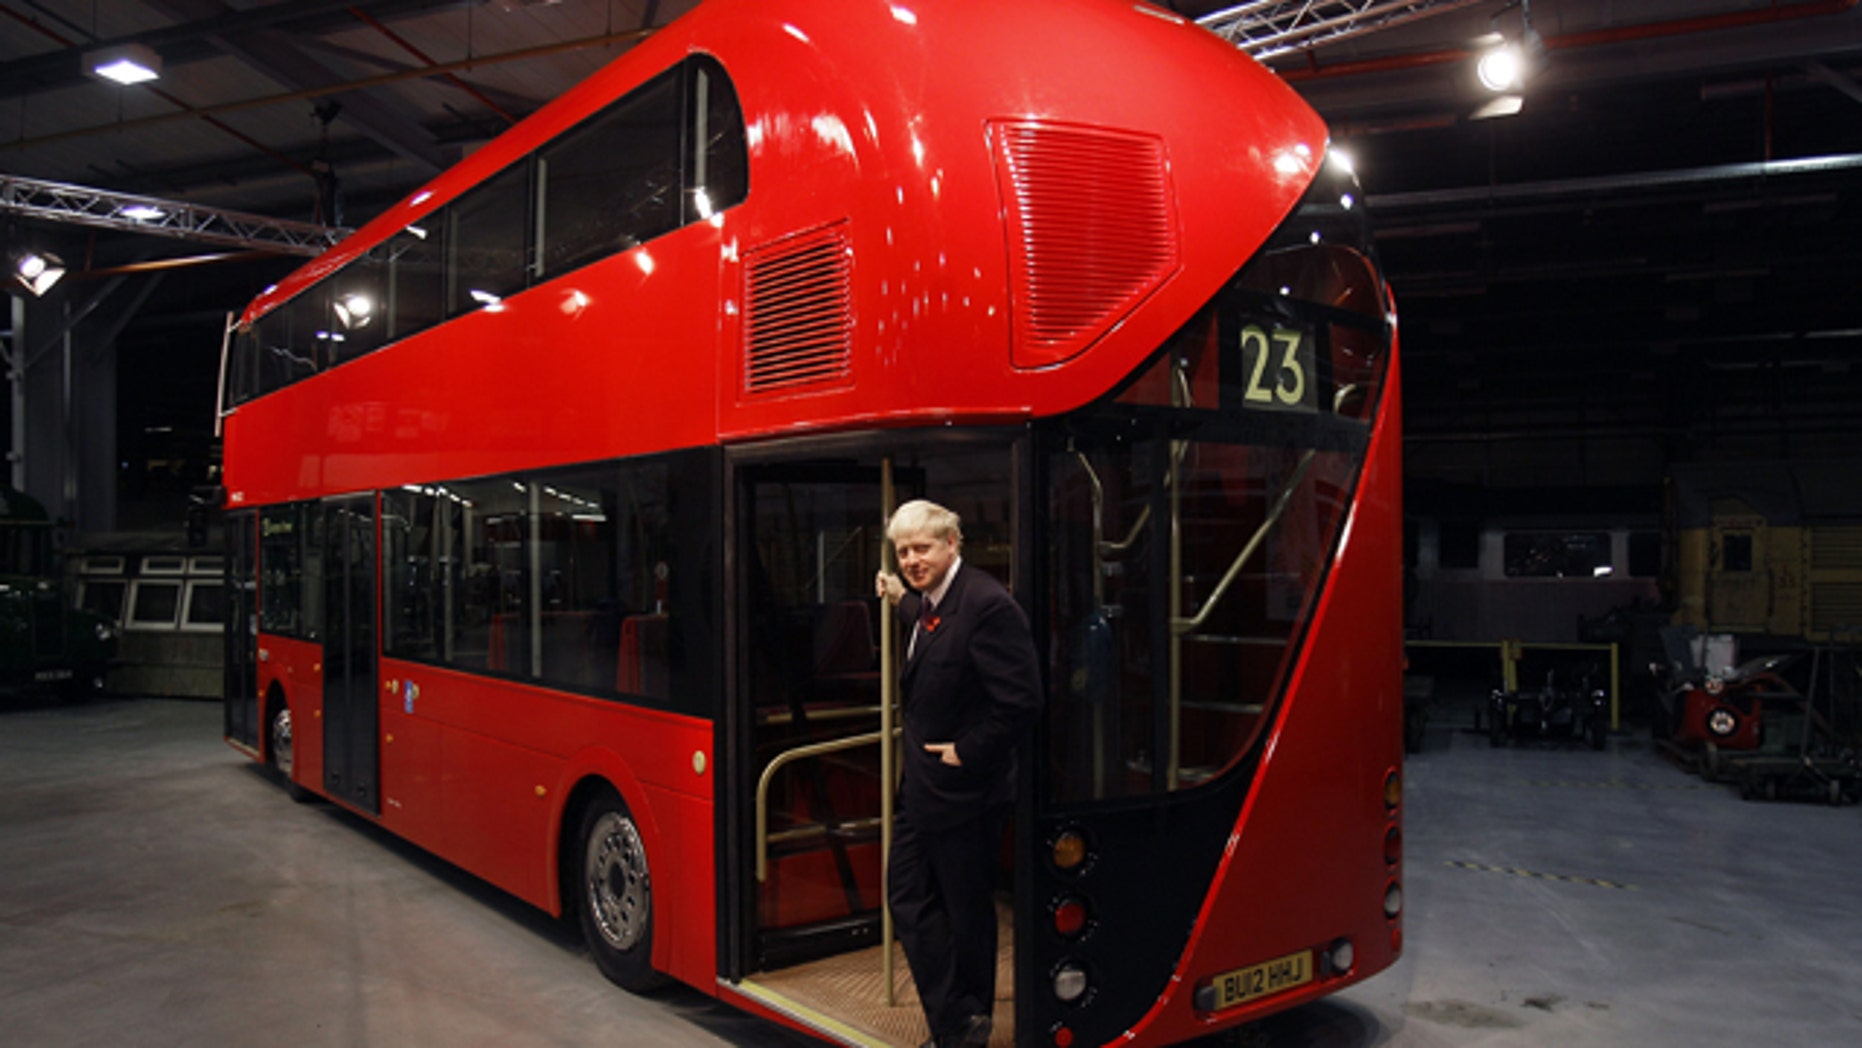 The Mayor of London Boris Johnson poses for a photograph at a press call to unveil the full size static mock-up of the New Bus for London, at Acton Transport Depot in London, Thursday, Nov. 11, 2010.